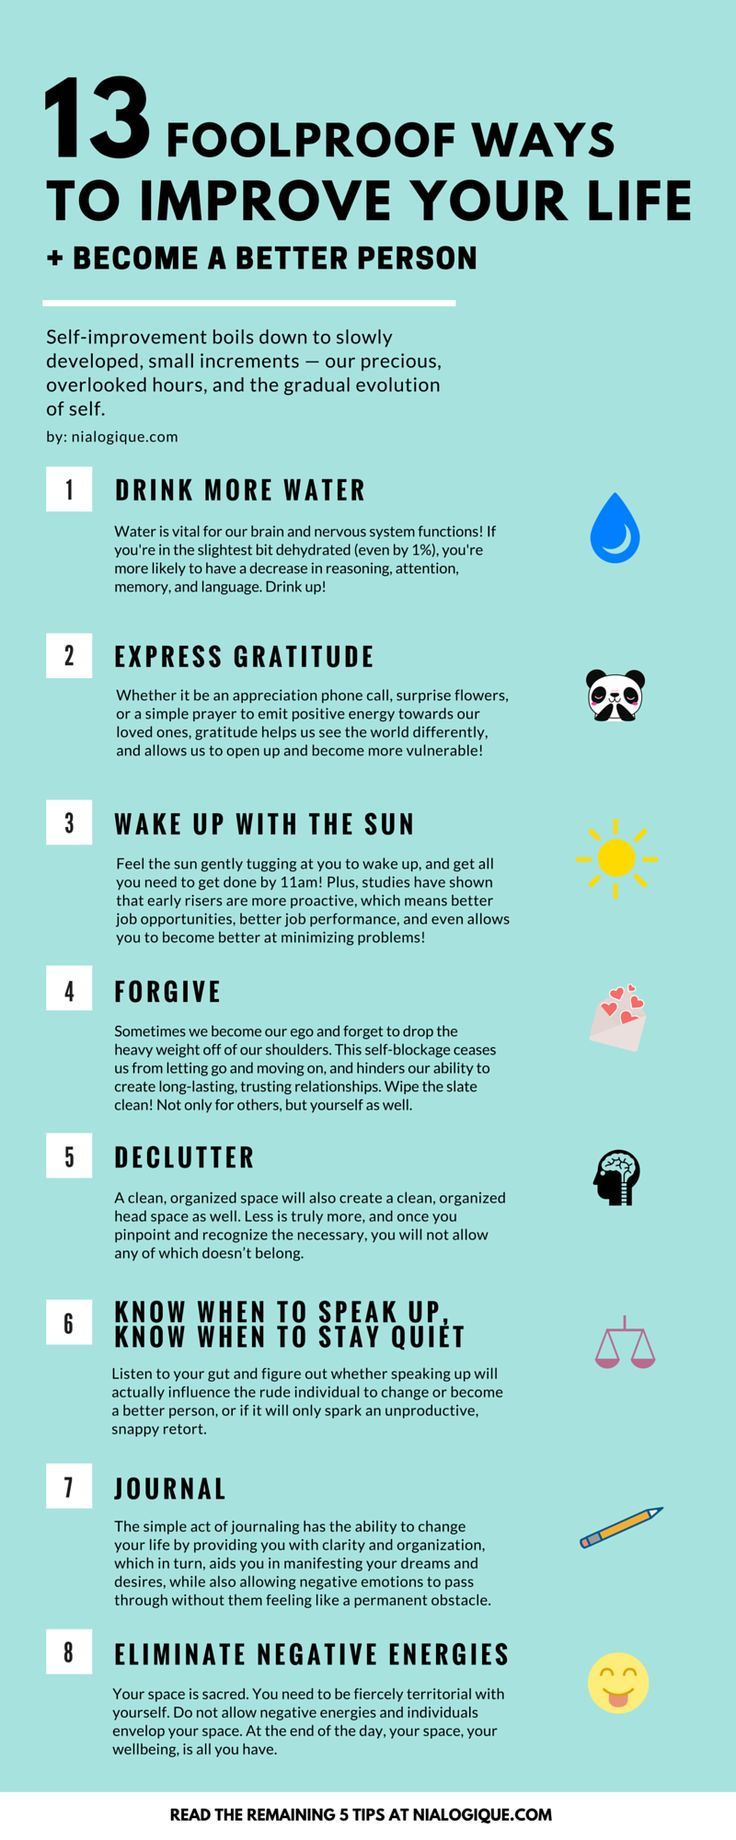 "Good: ""13 Foolproof Ways to Improve Your Life + Become a Better Person"". Infographic. I agree with all of this. For a good life. I would add a few things -- but this is such a good start."